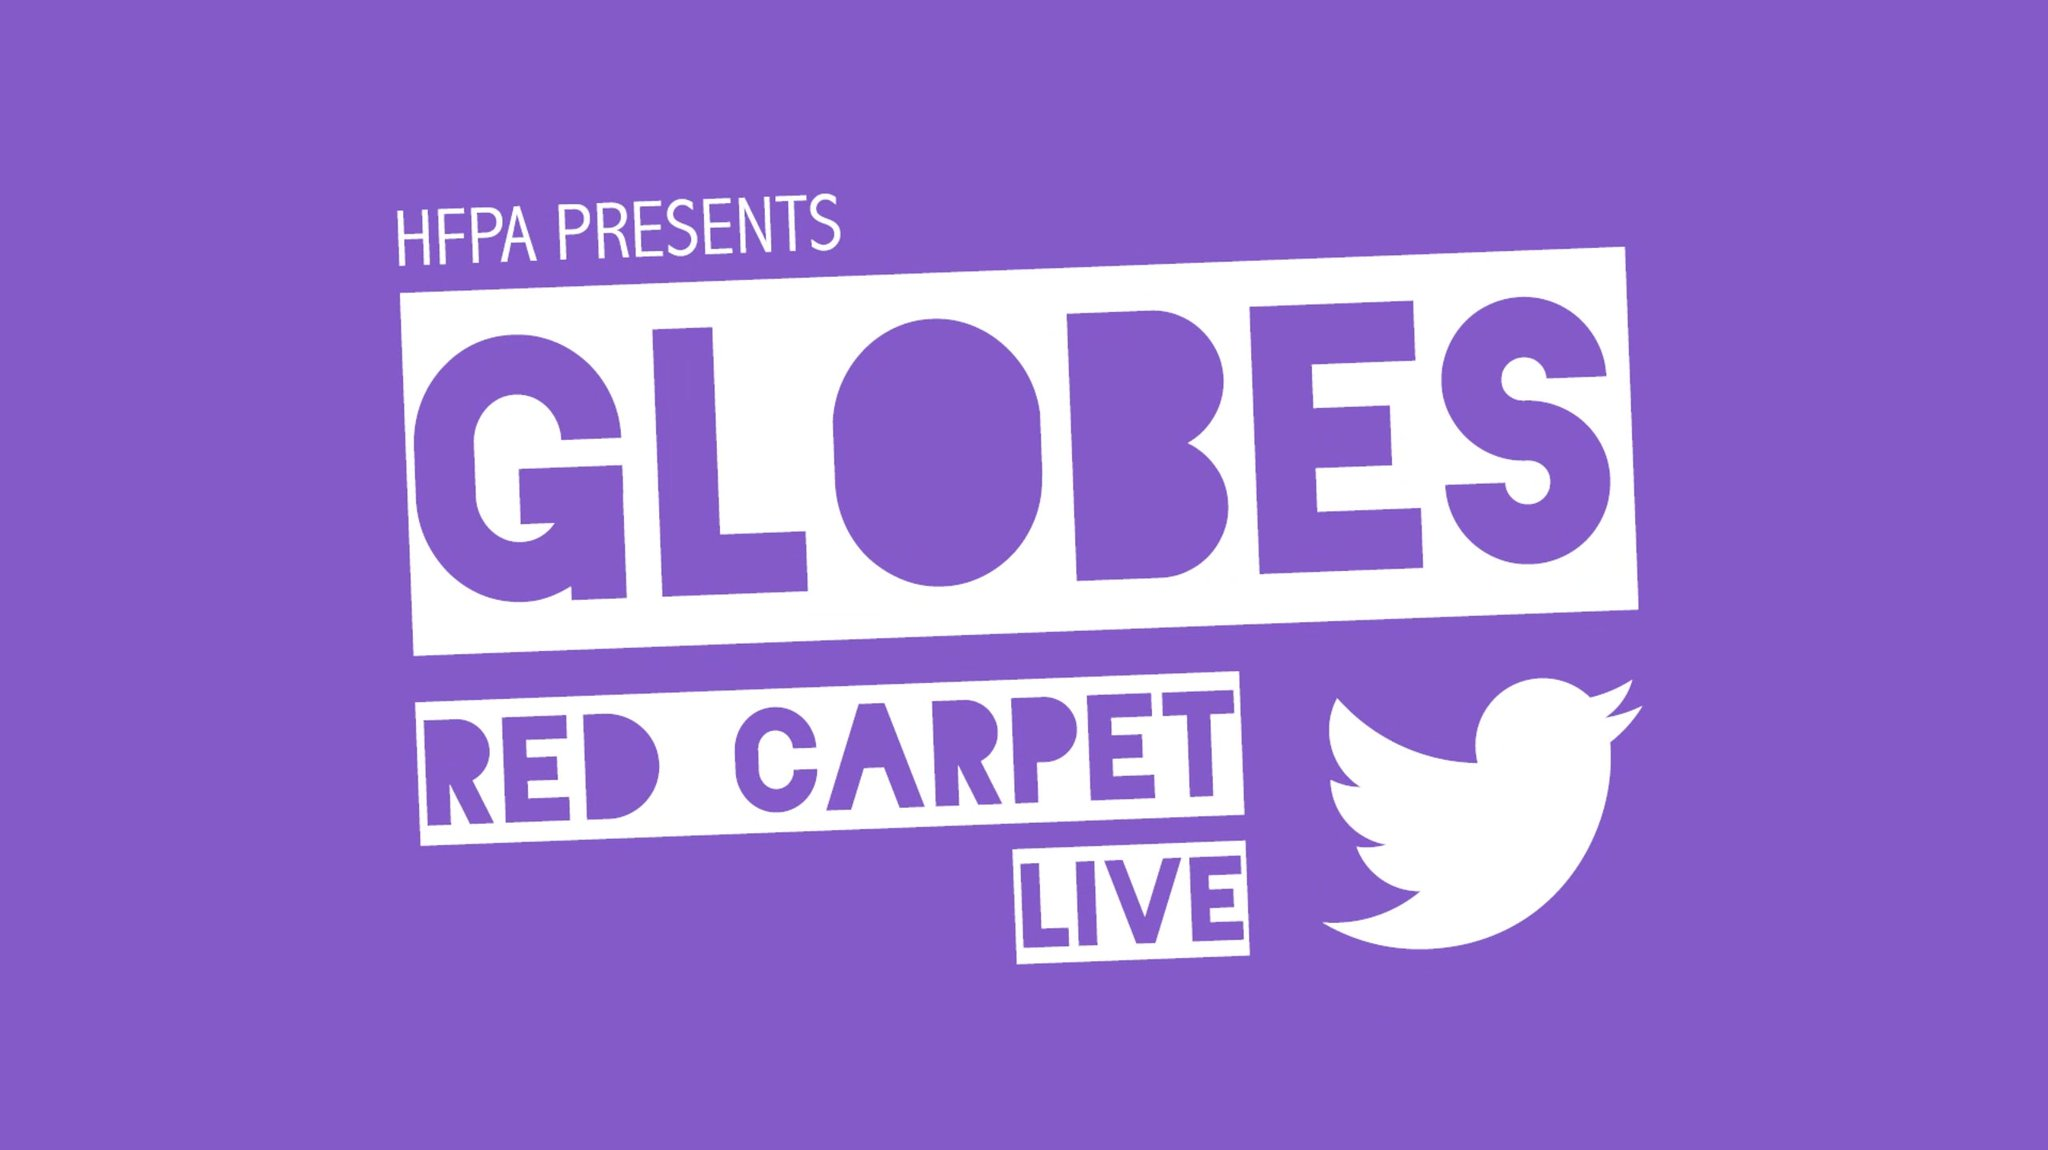 Walk the red carpet, wherever you are.  Watch the #GoldenGlobes Red Carpet LIVE right here on Twitter! https://t.co/mcCZ9S04ga